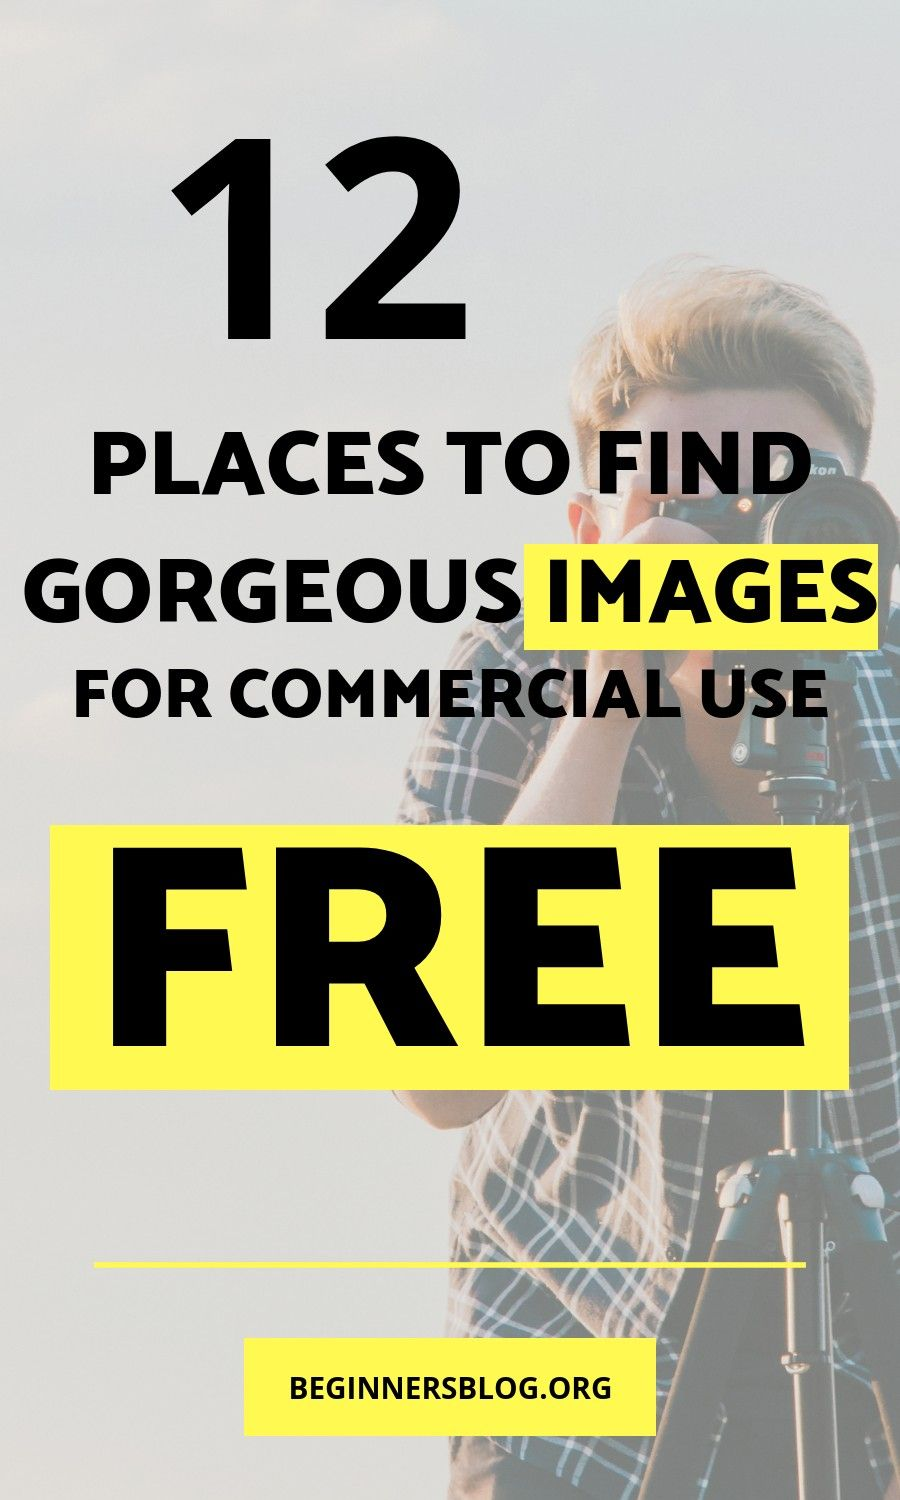 12 Best Stock Photo Sites Use Free Images No Copyright For Bloggers And Image Lovers Best Stock Photo Sites Stock Photo Sites Stock Photography Business